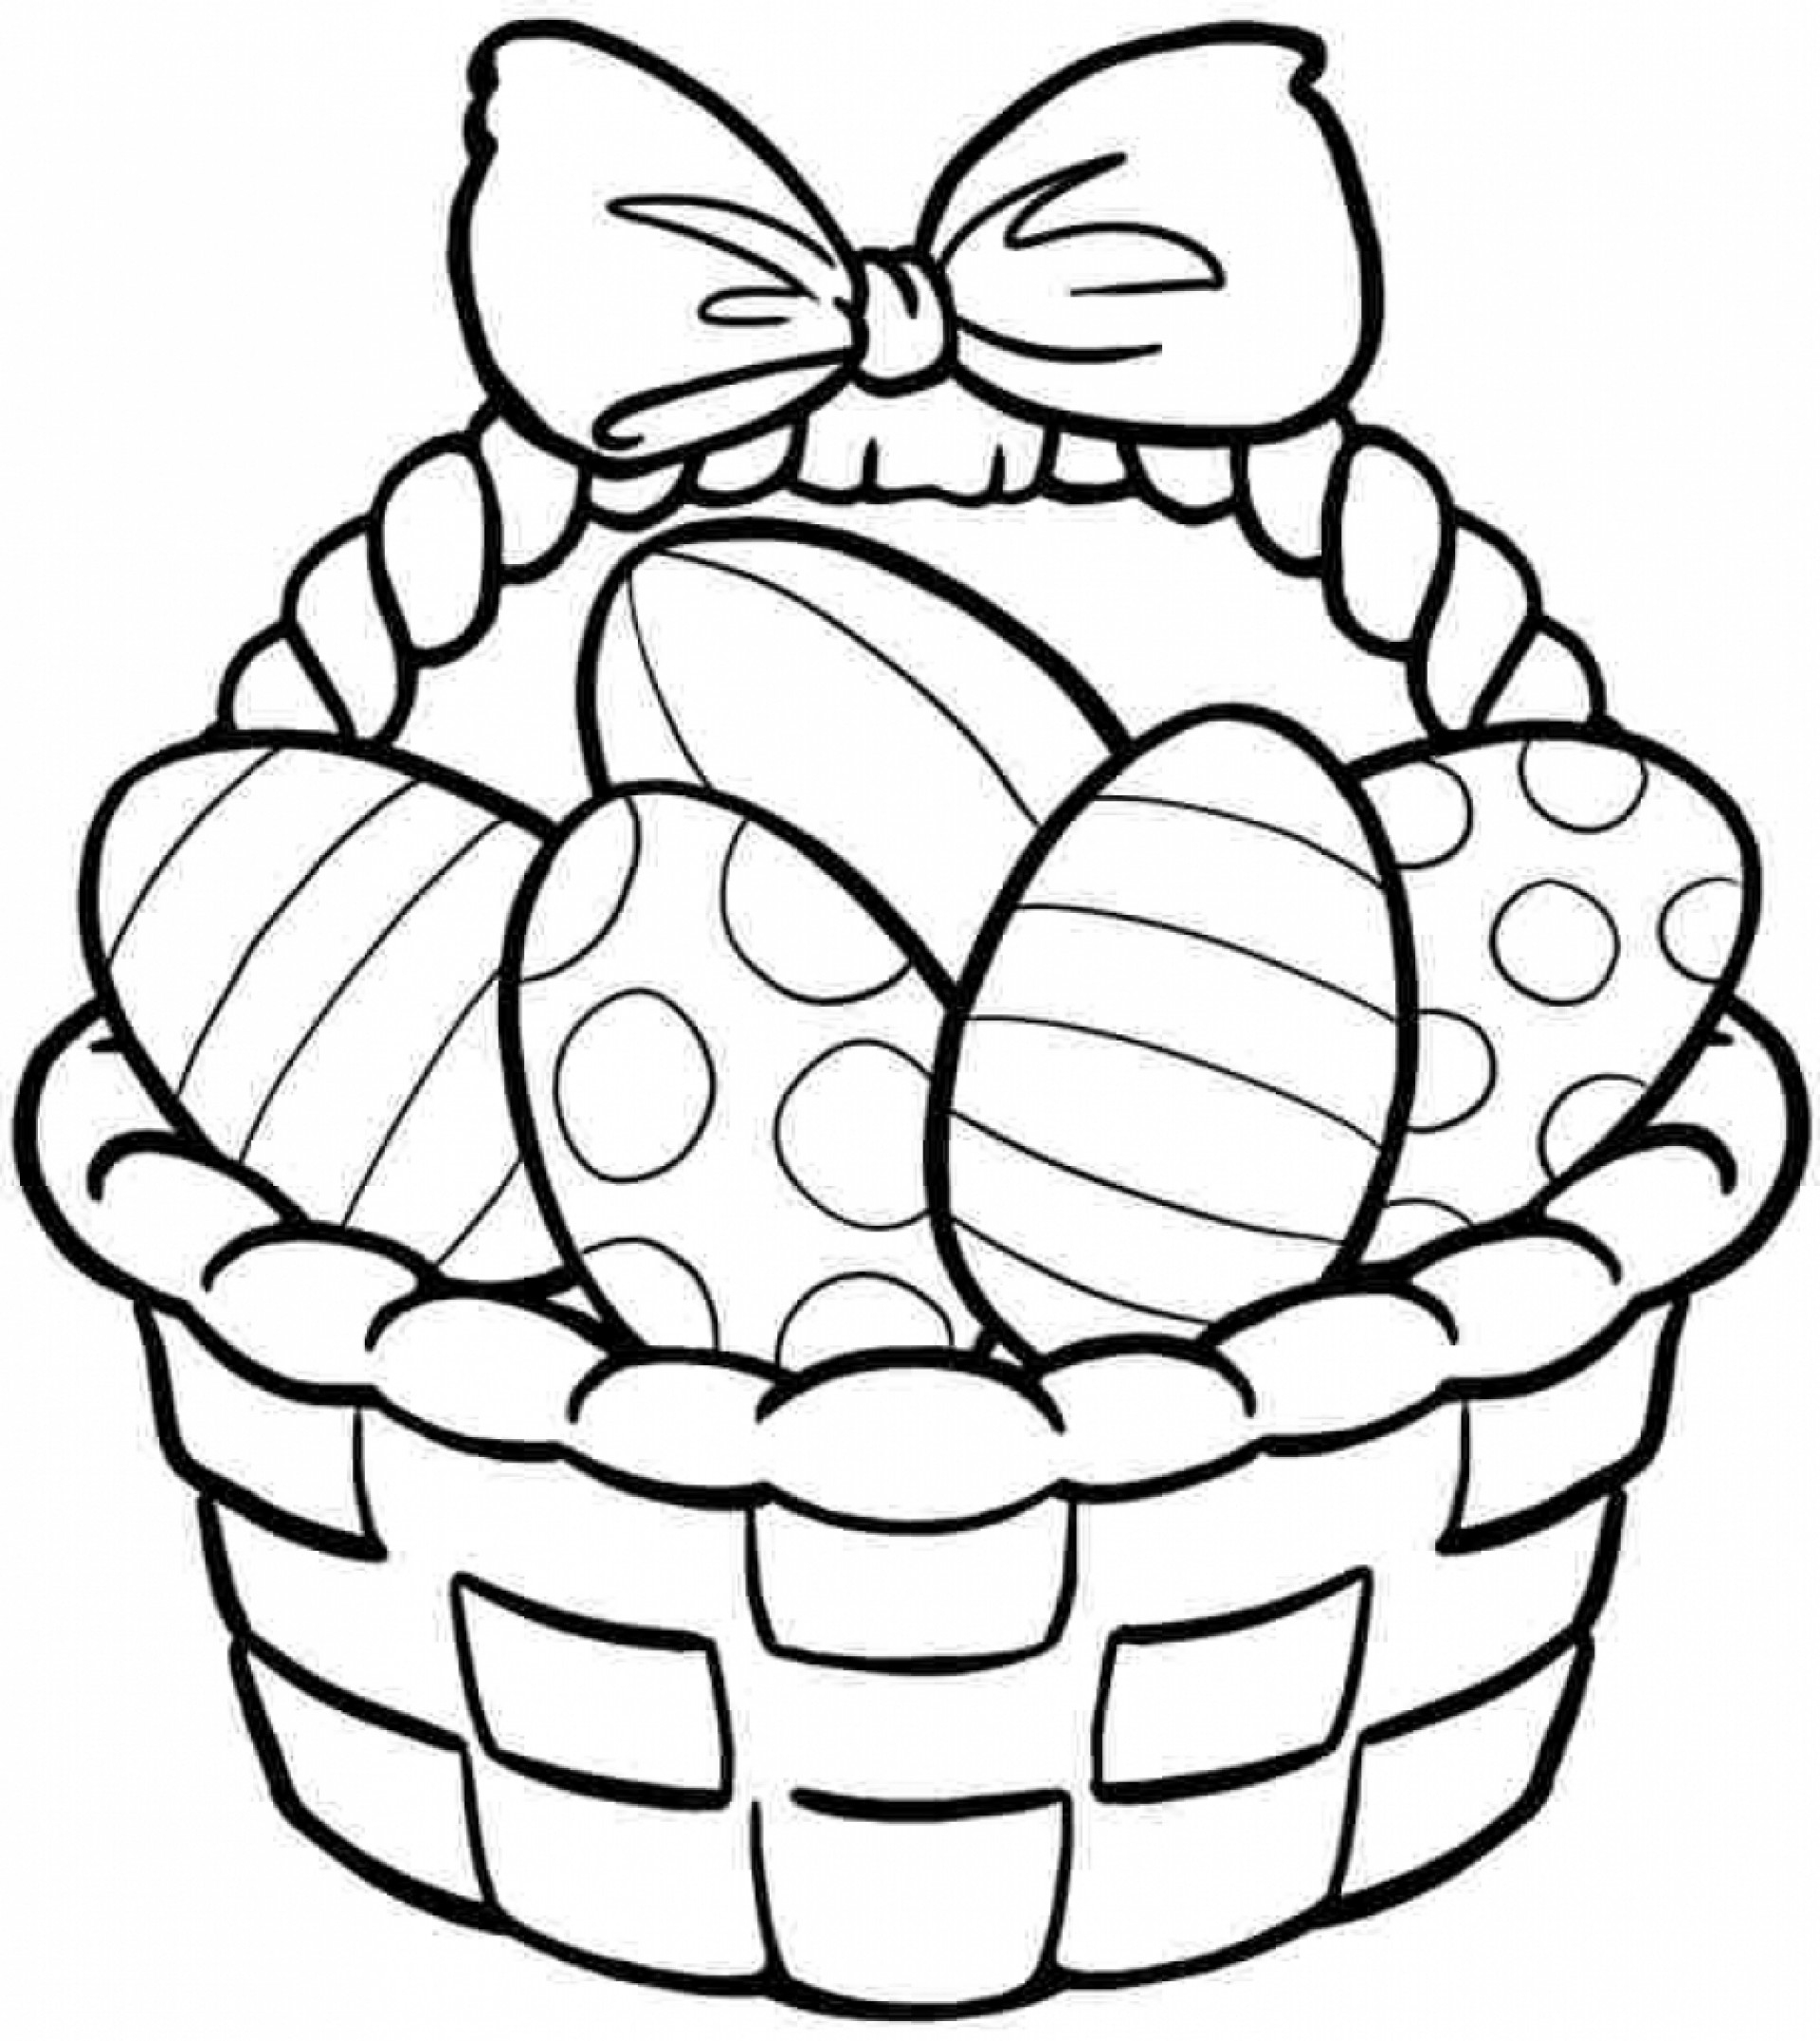 Coloring Pages : High Resolution Coloring Book Images Free Printable - Free Printable Coloring Pages Easter Basket